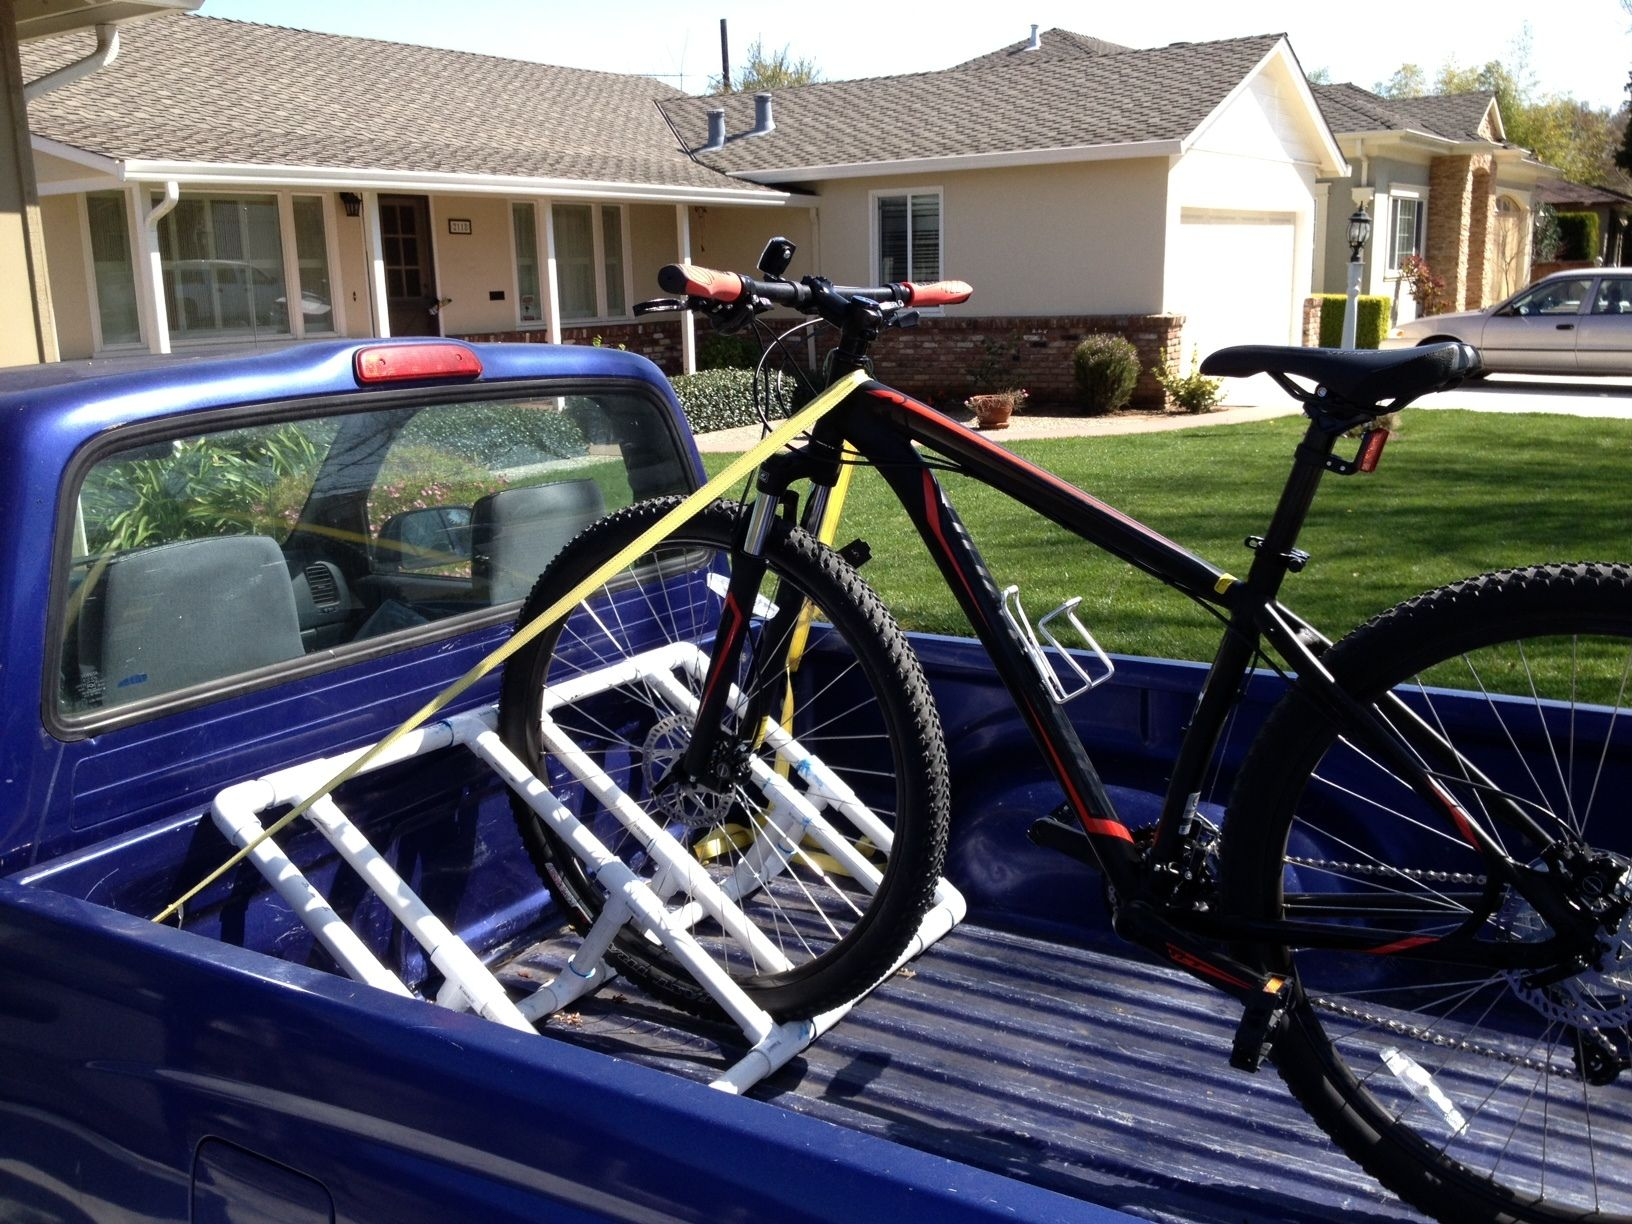 Truckbed Pvc Bike Rack Misc Awesome Stuff Pvc Bike